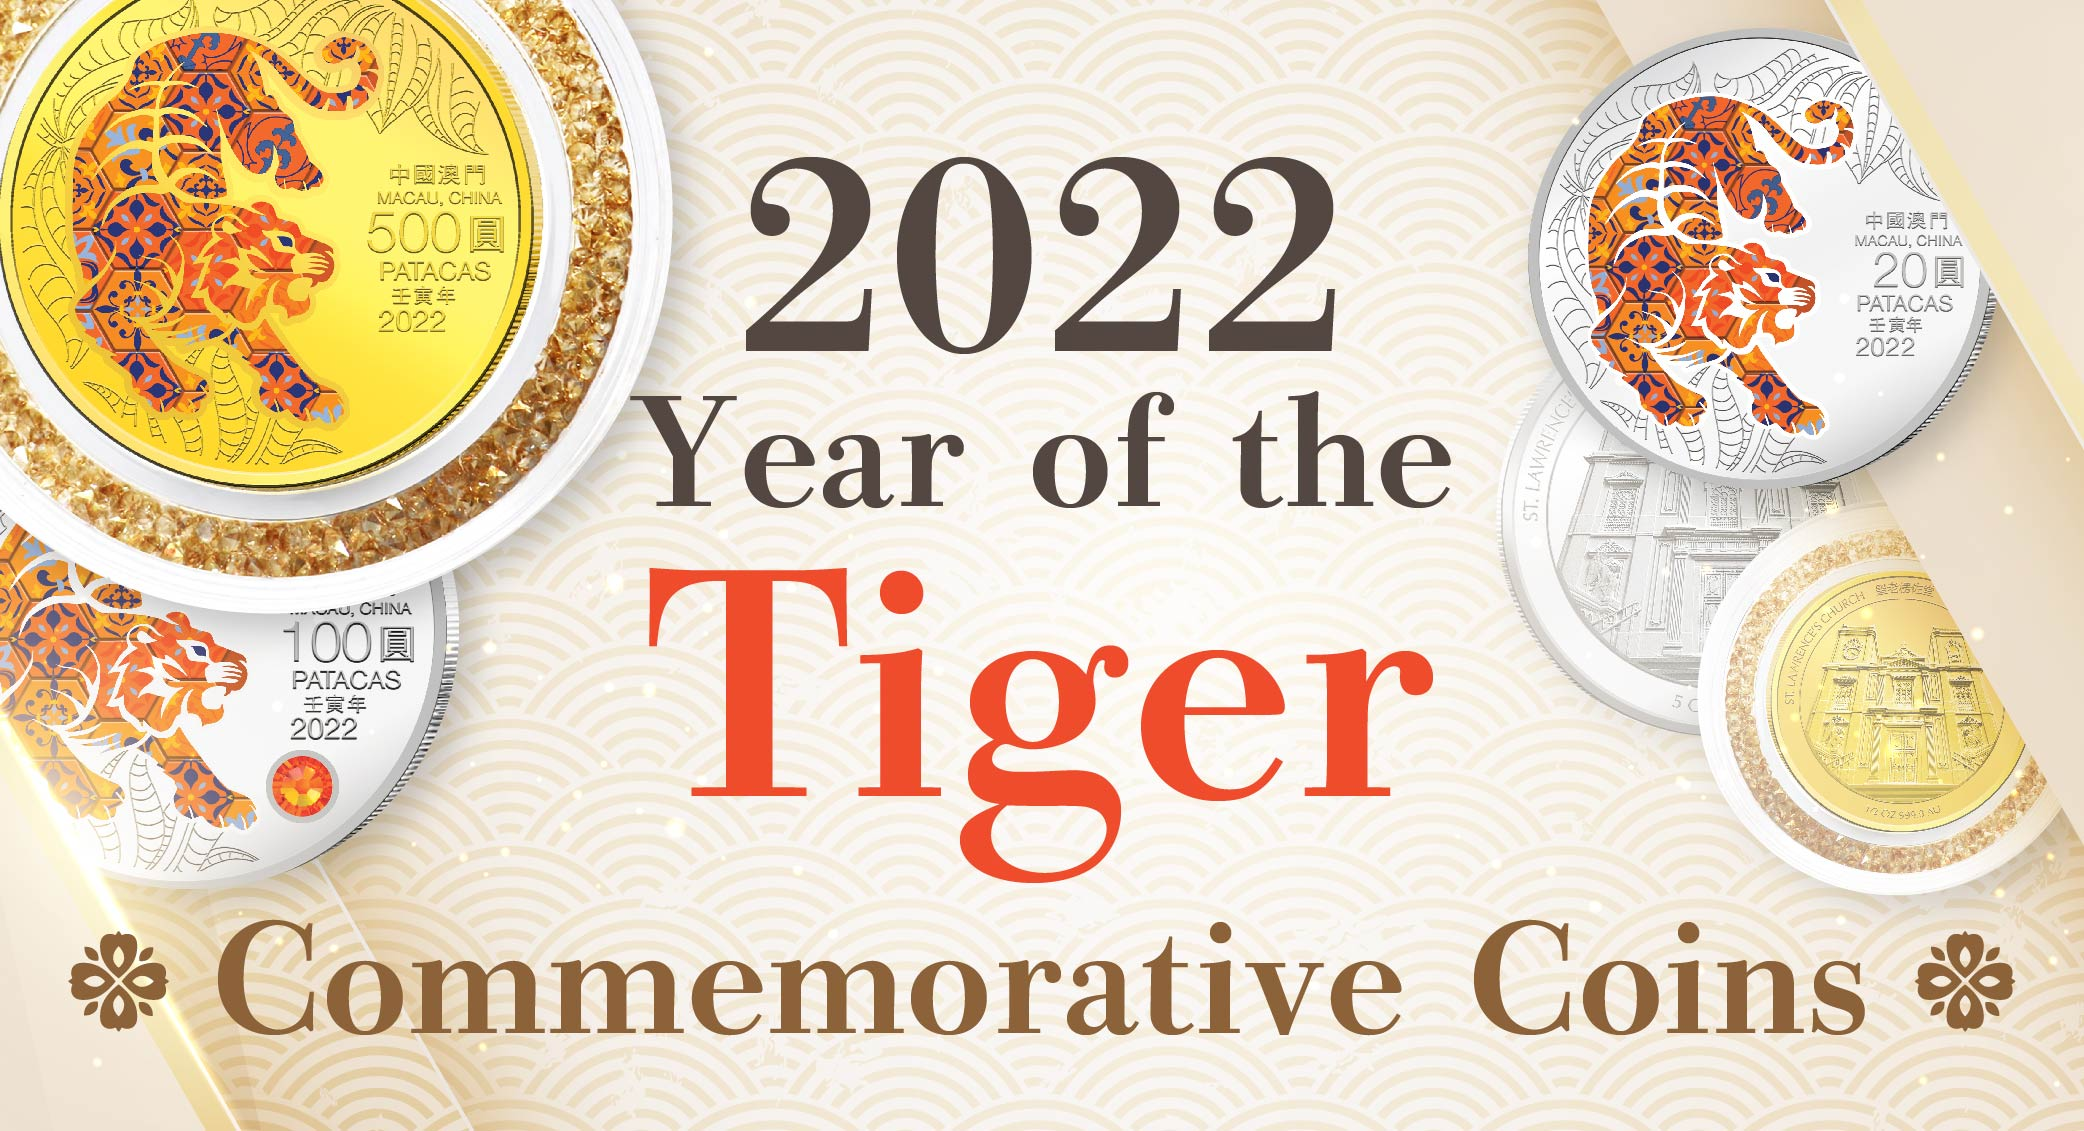 2022 Year of the Tiger commemorative coins